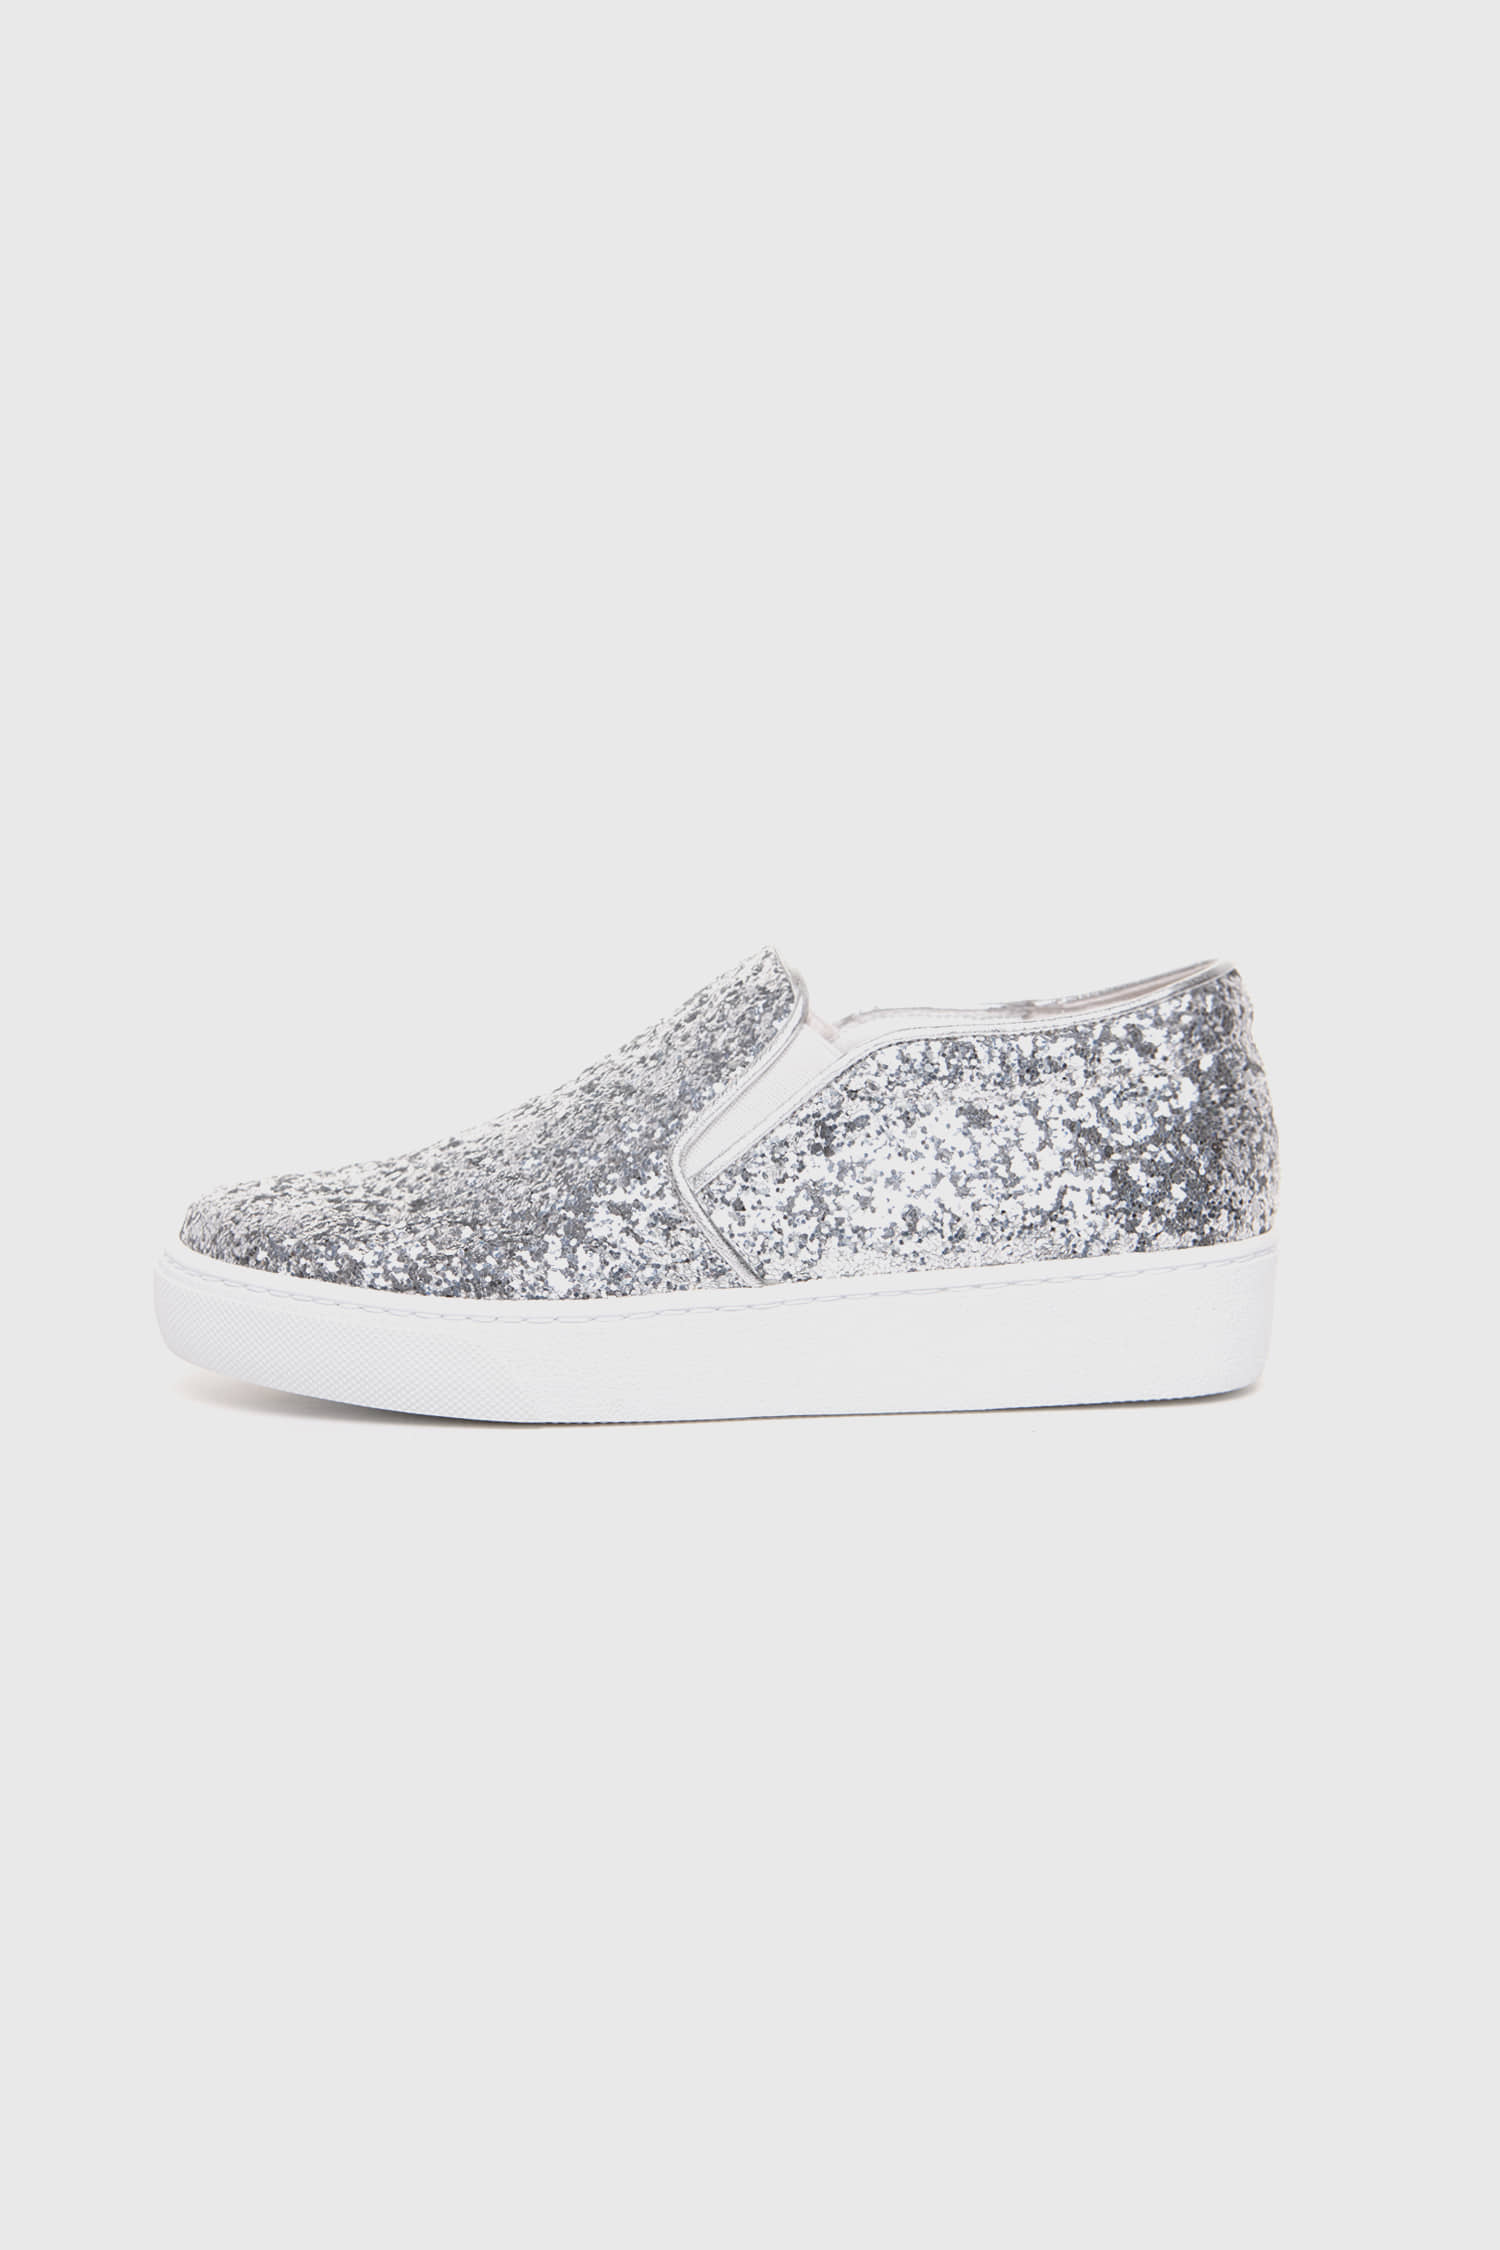 SHINING SLIP-ON SILVER